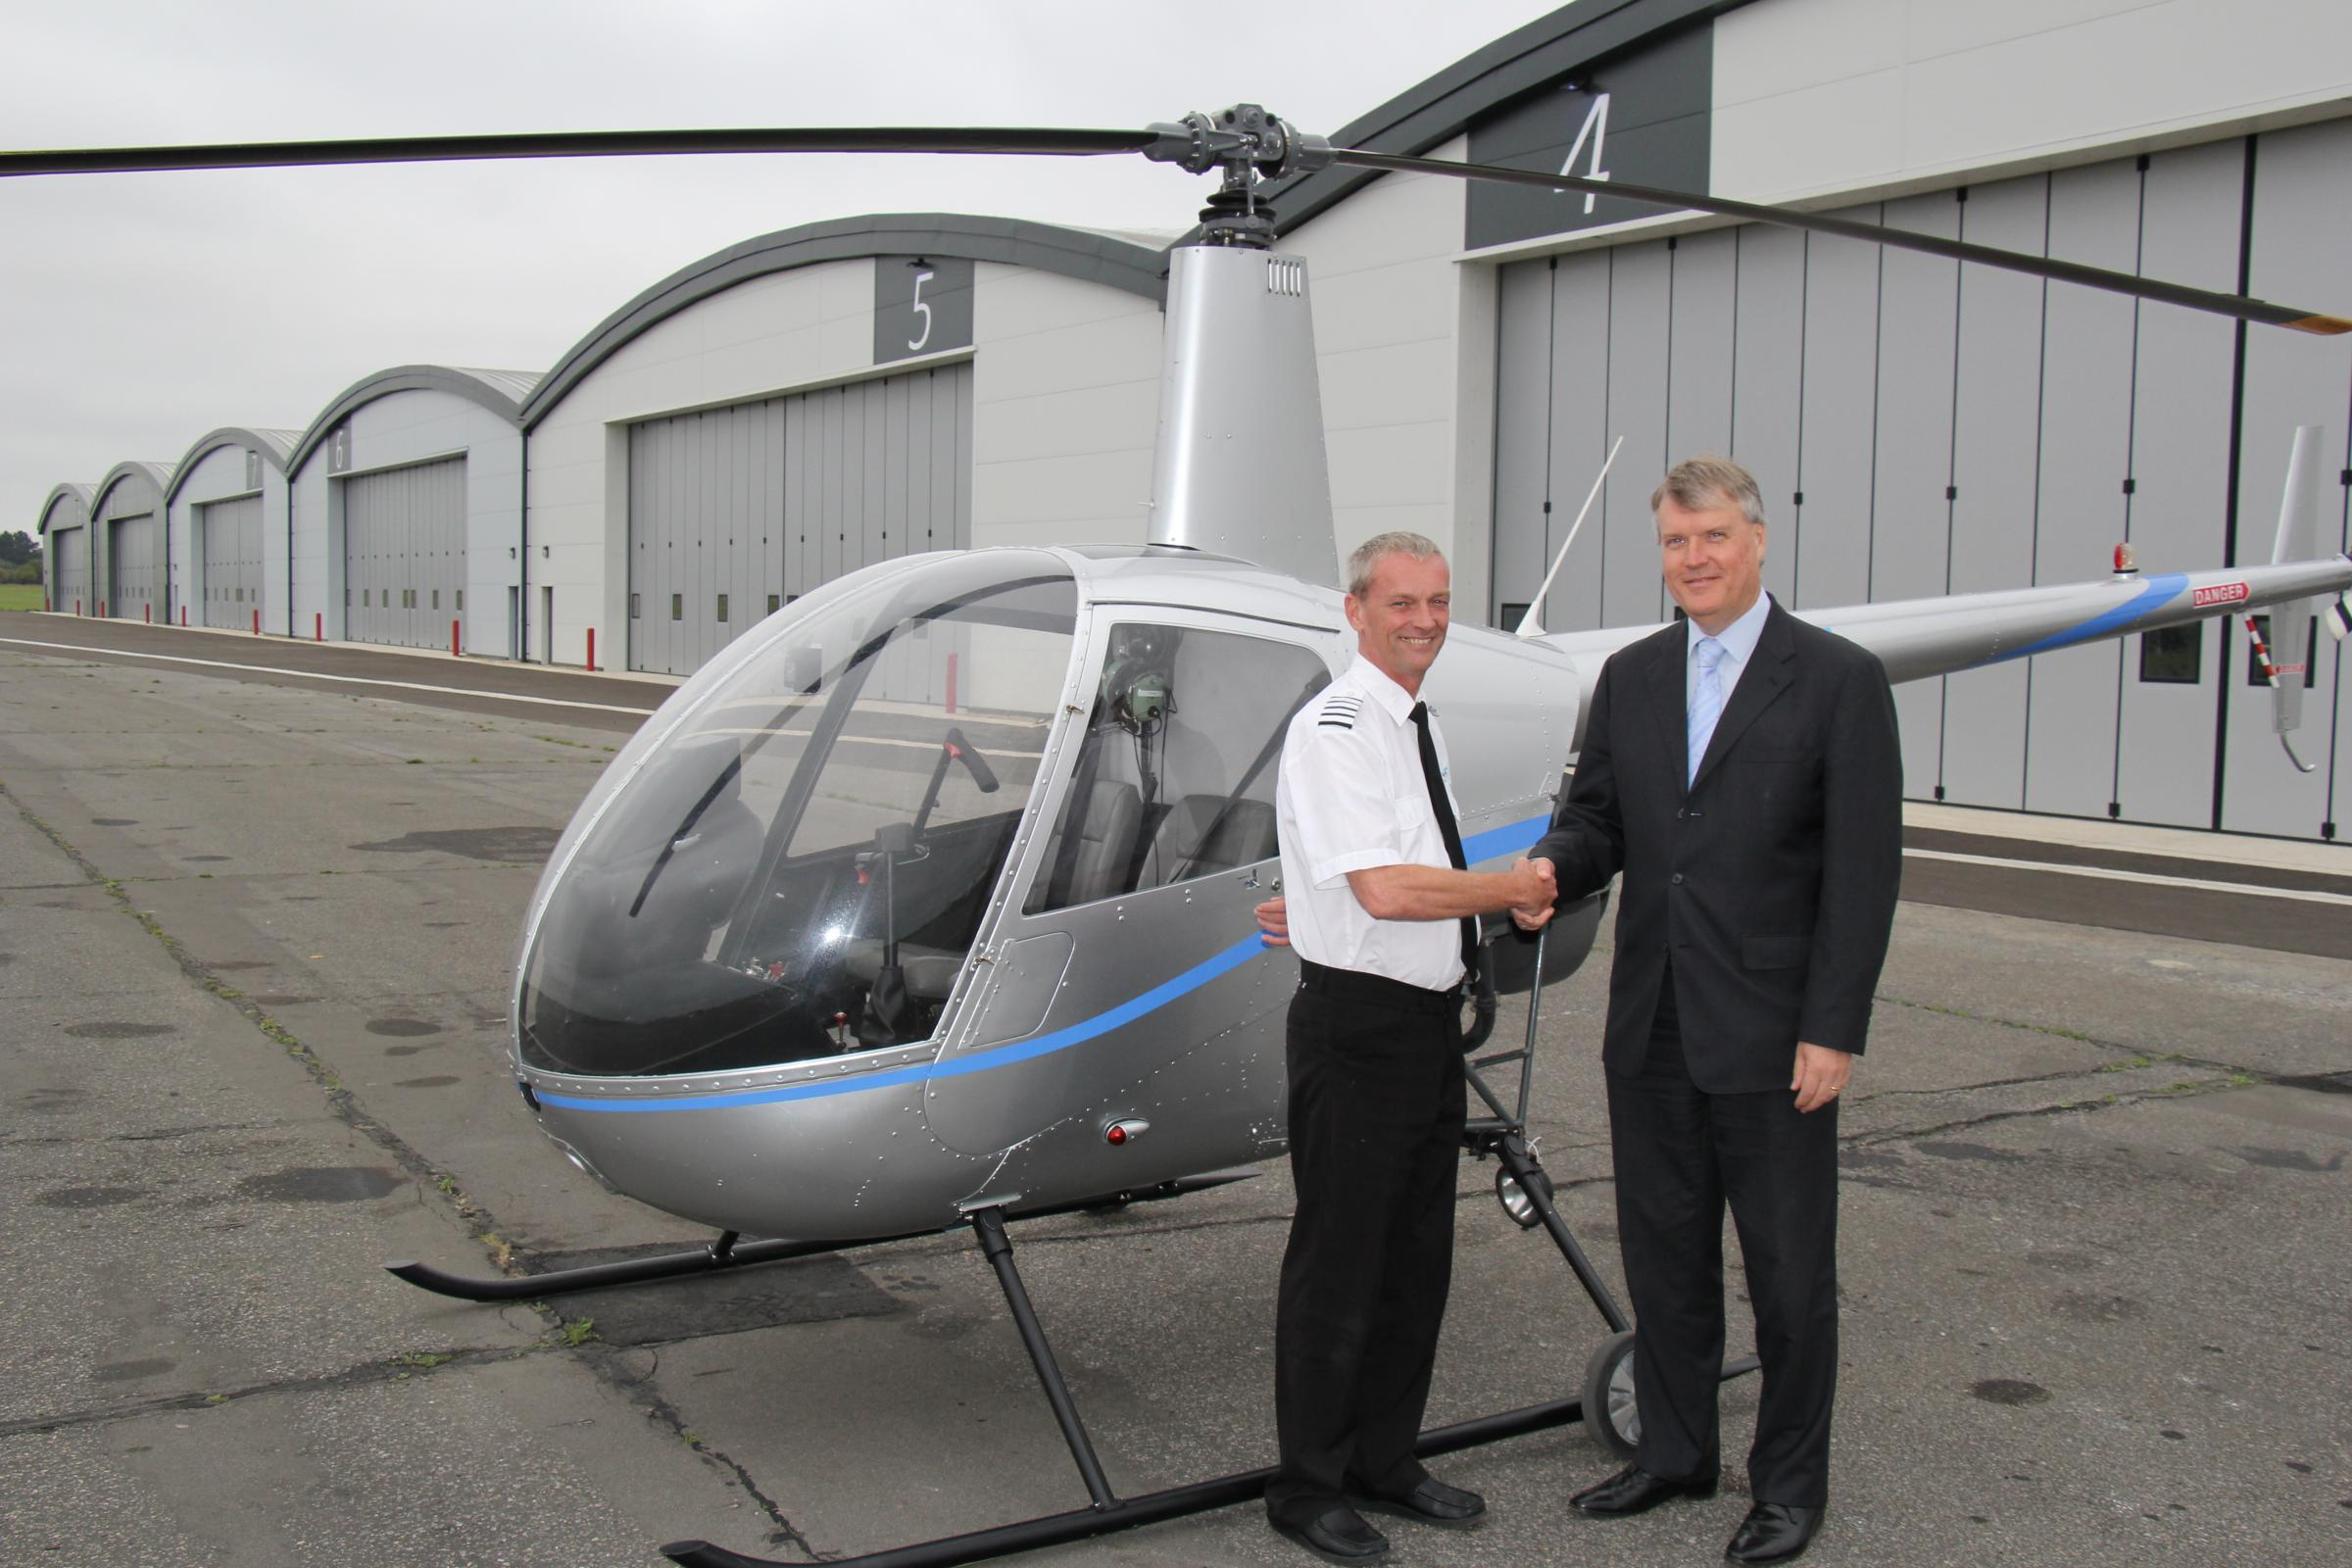 Fareham Borough Council leader Cllr Seán Woodward with Paul Andrews, Managing Director of Phoenix Helicopters, at Solent Airport at Daedalus.